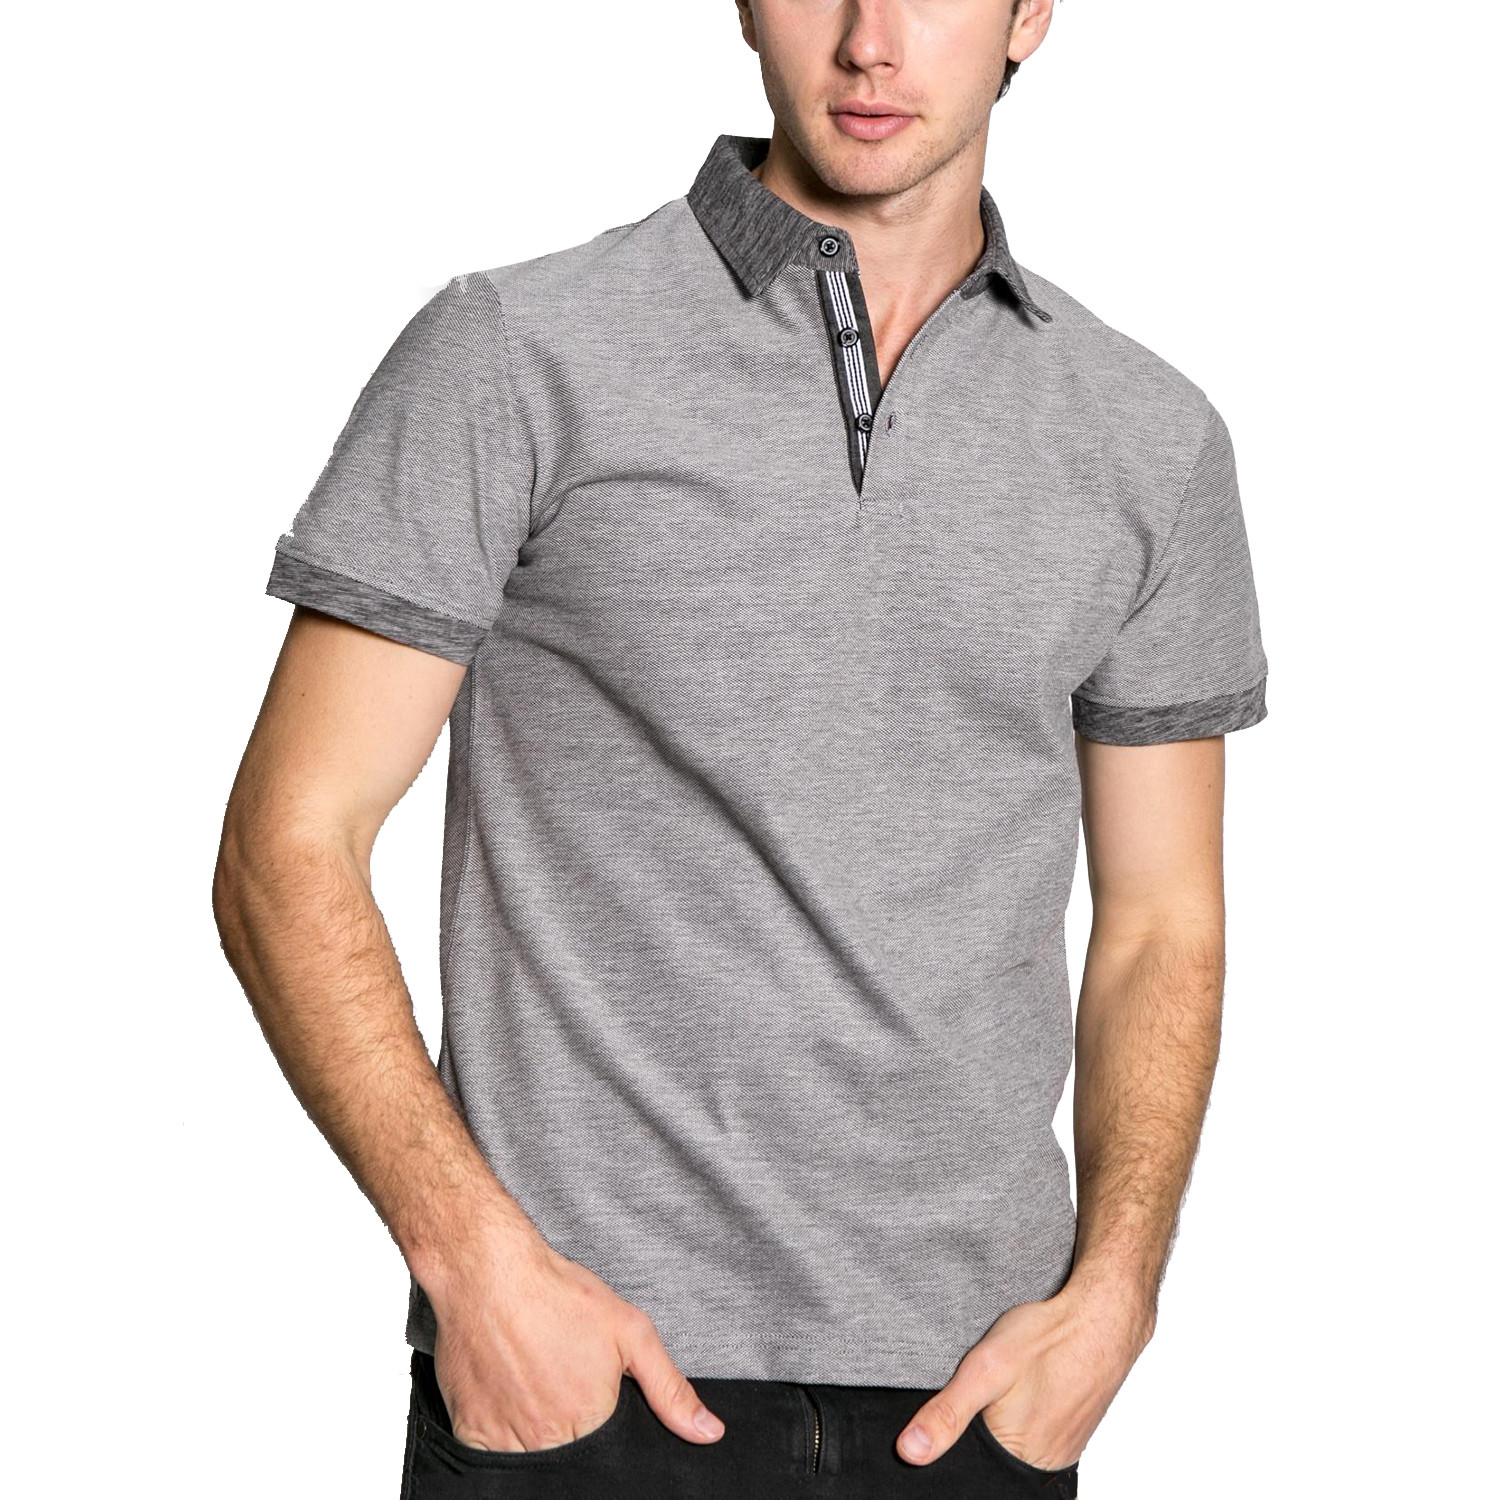 17dfeb04eaa Business Casual Knit S S Polo Shirt    Grey (XL) - Smash Trends ...